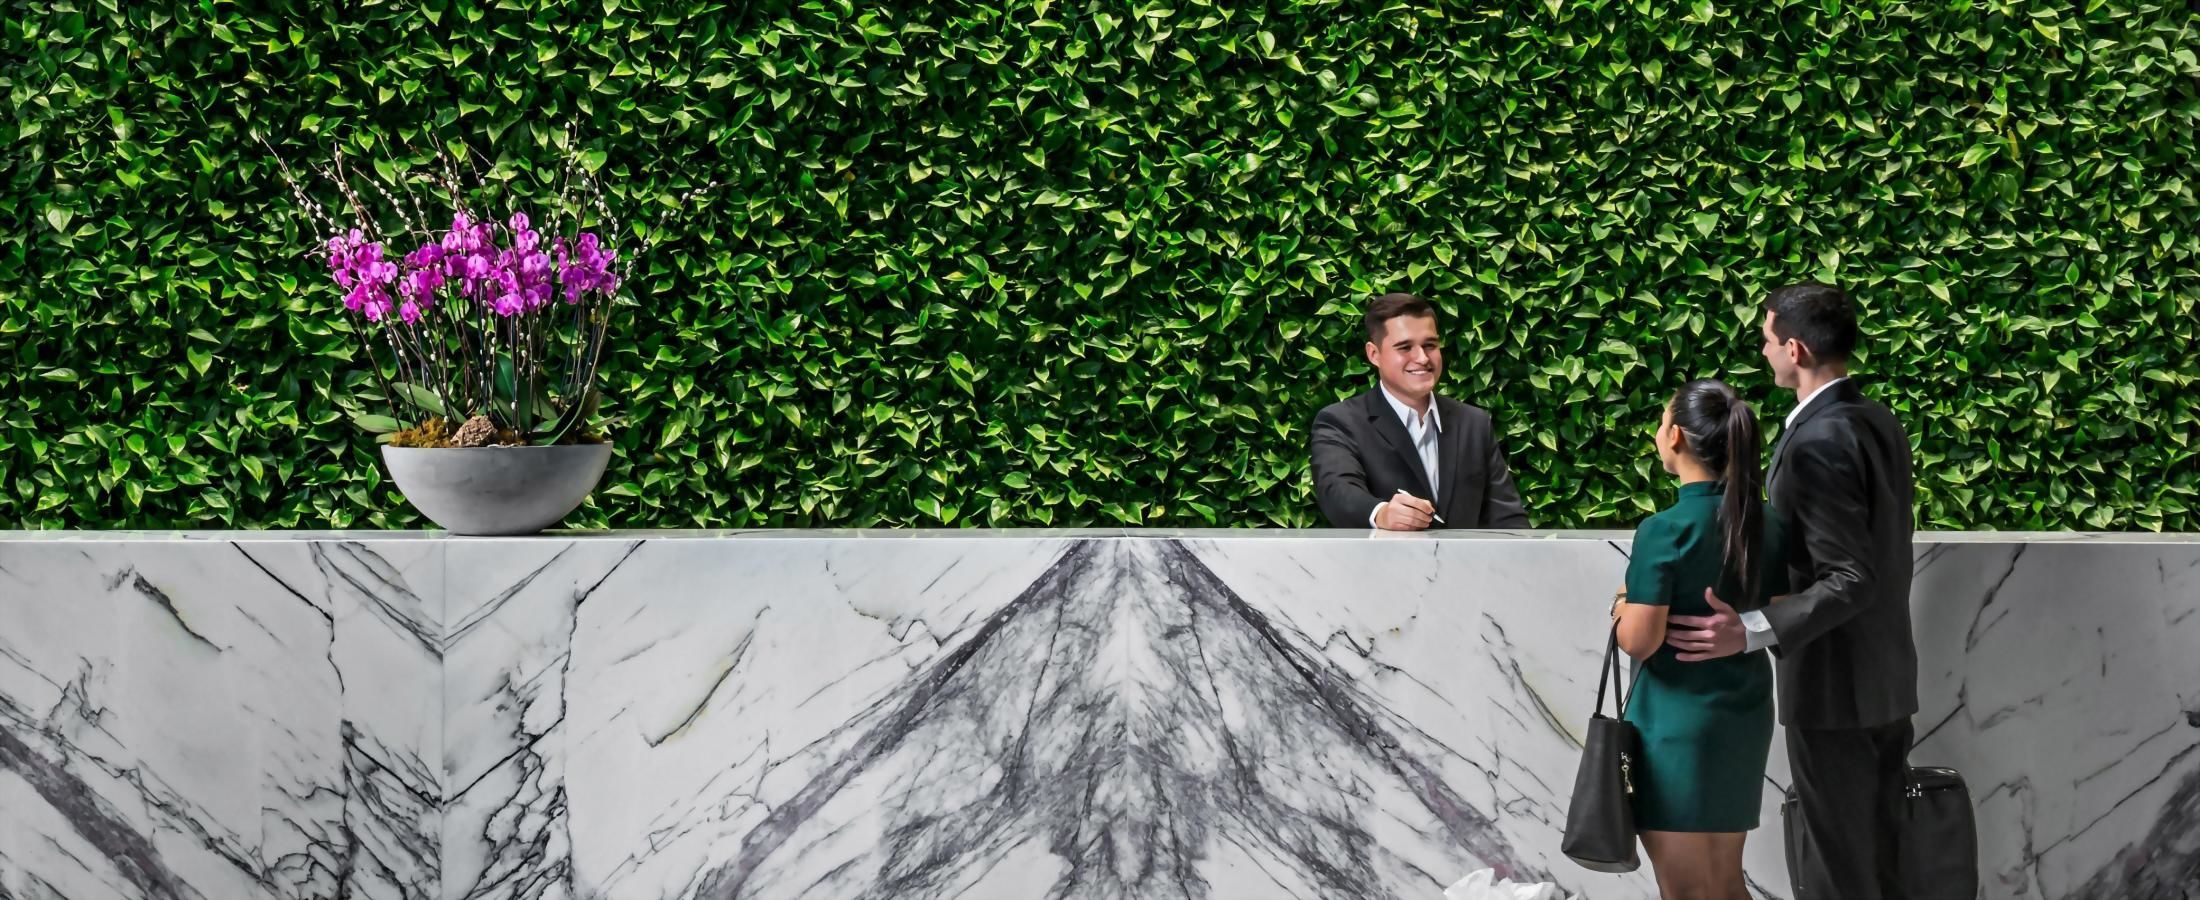 Two guests checking in at the large marble front desk with large green living wall behind it.